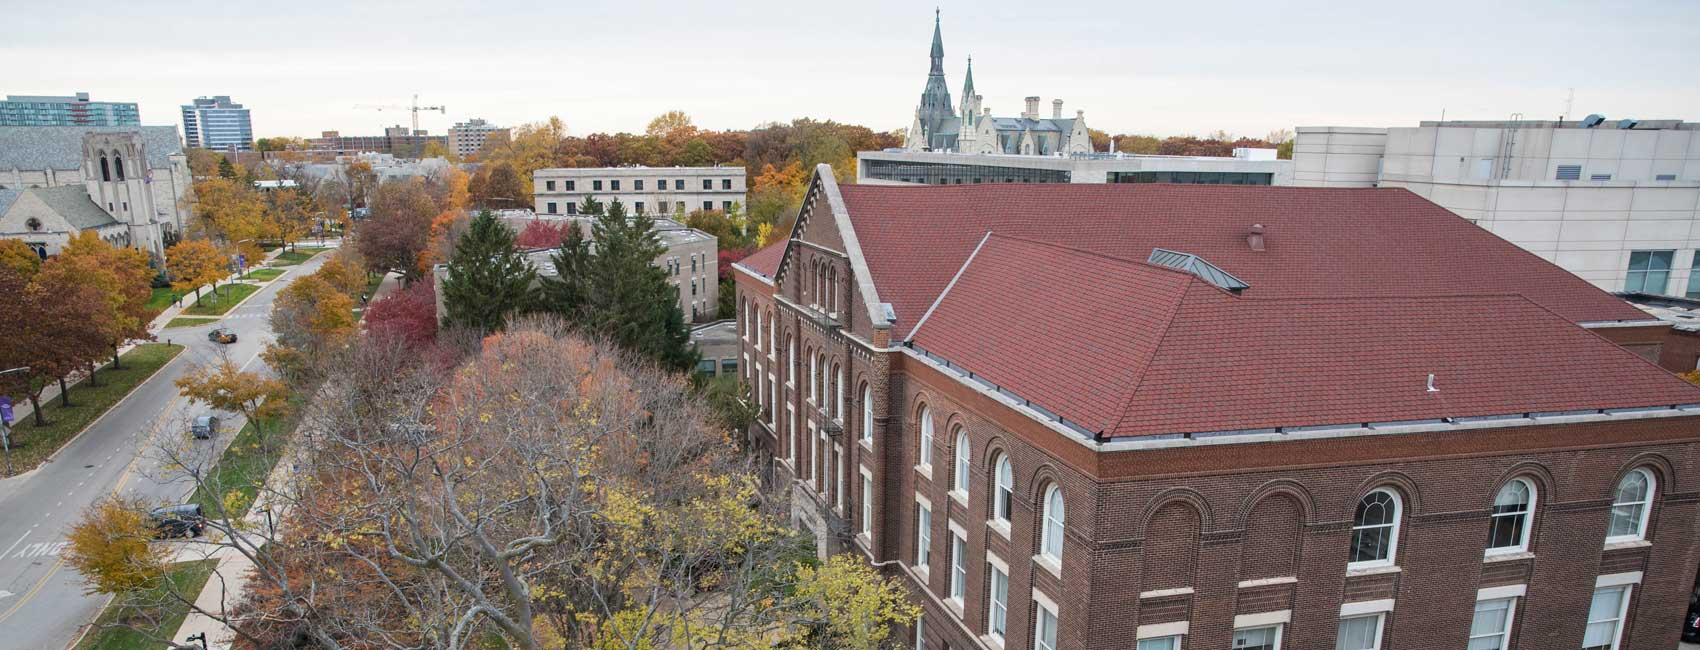 A brick building is shown from an aerial view. There is a street below with cars driving on it and a building with a tall steeple in the background.